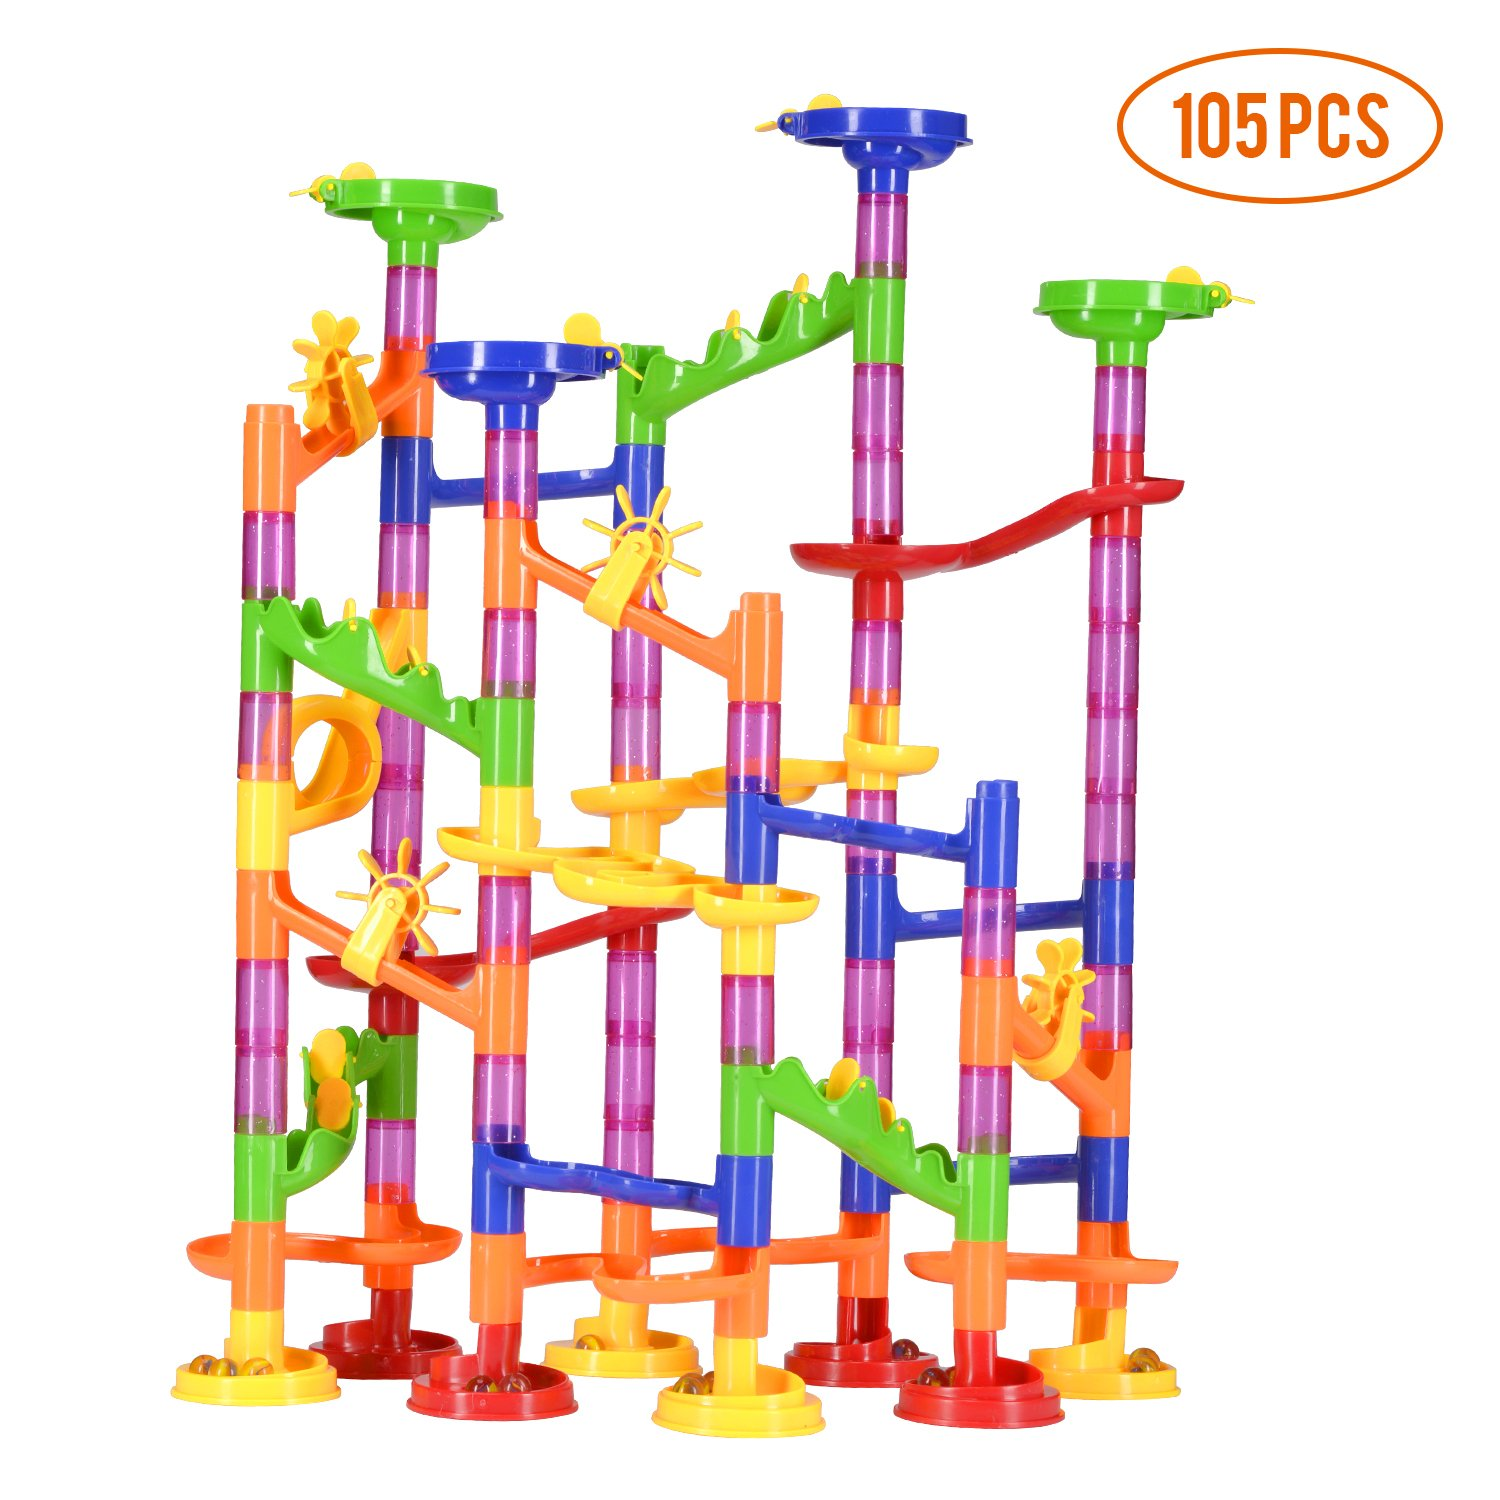 Vamslove Marble Run Sets, 105 Pieces Marble STEM Games Construction Building Blocks Marble Run Learning Educational Kids Toys for Age 4 5 6 7 + Year Old Boys Girls Birthday